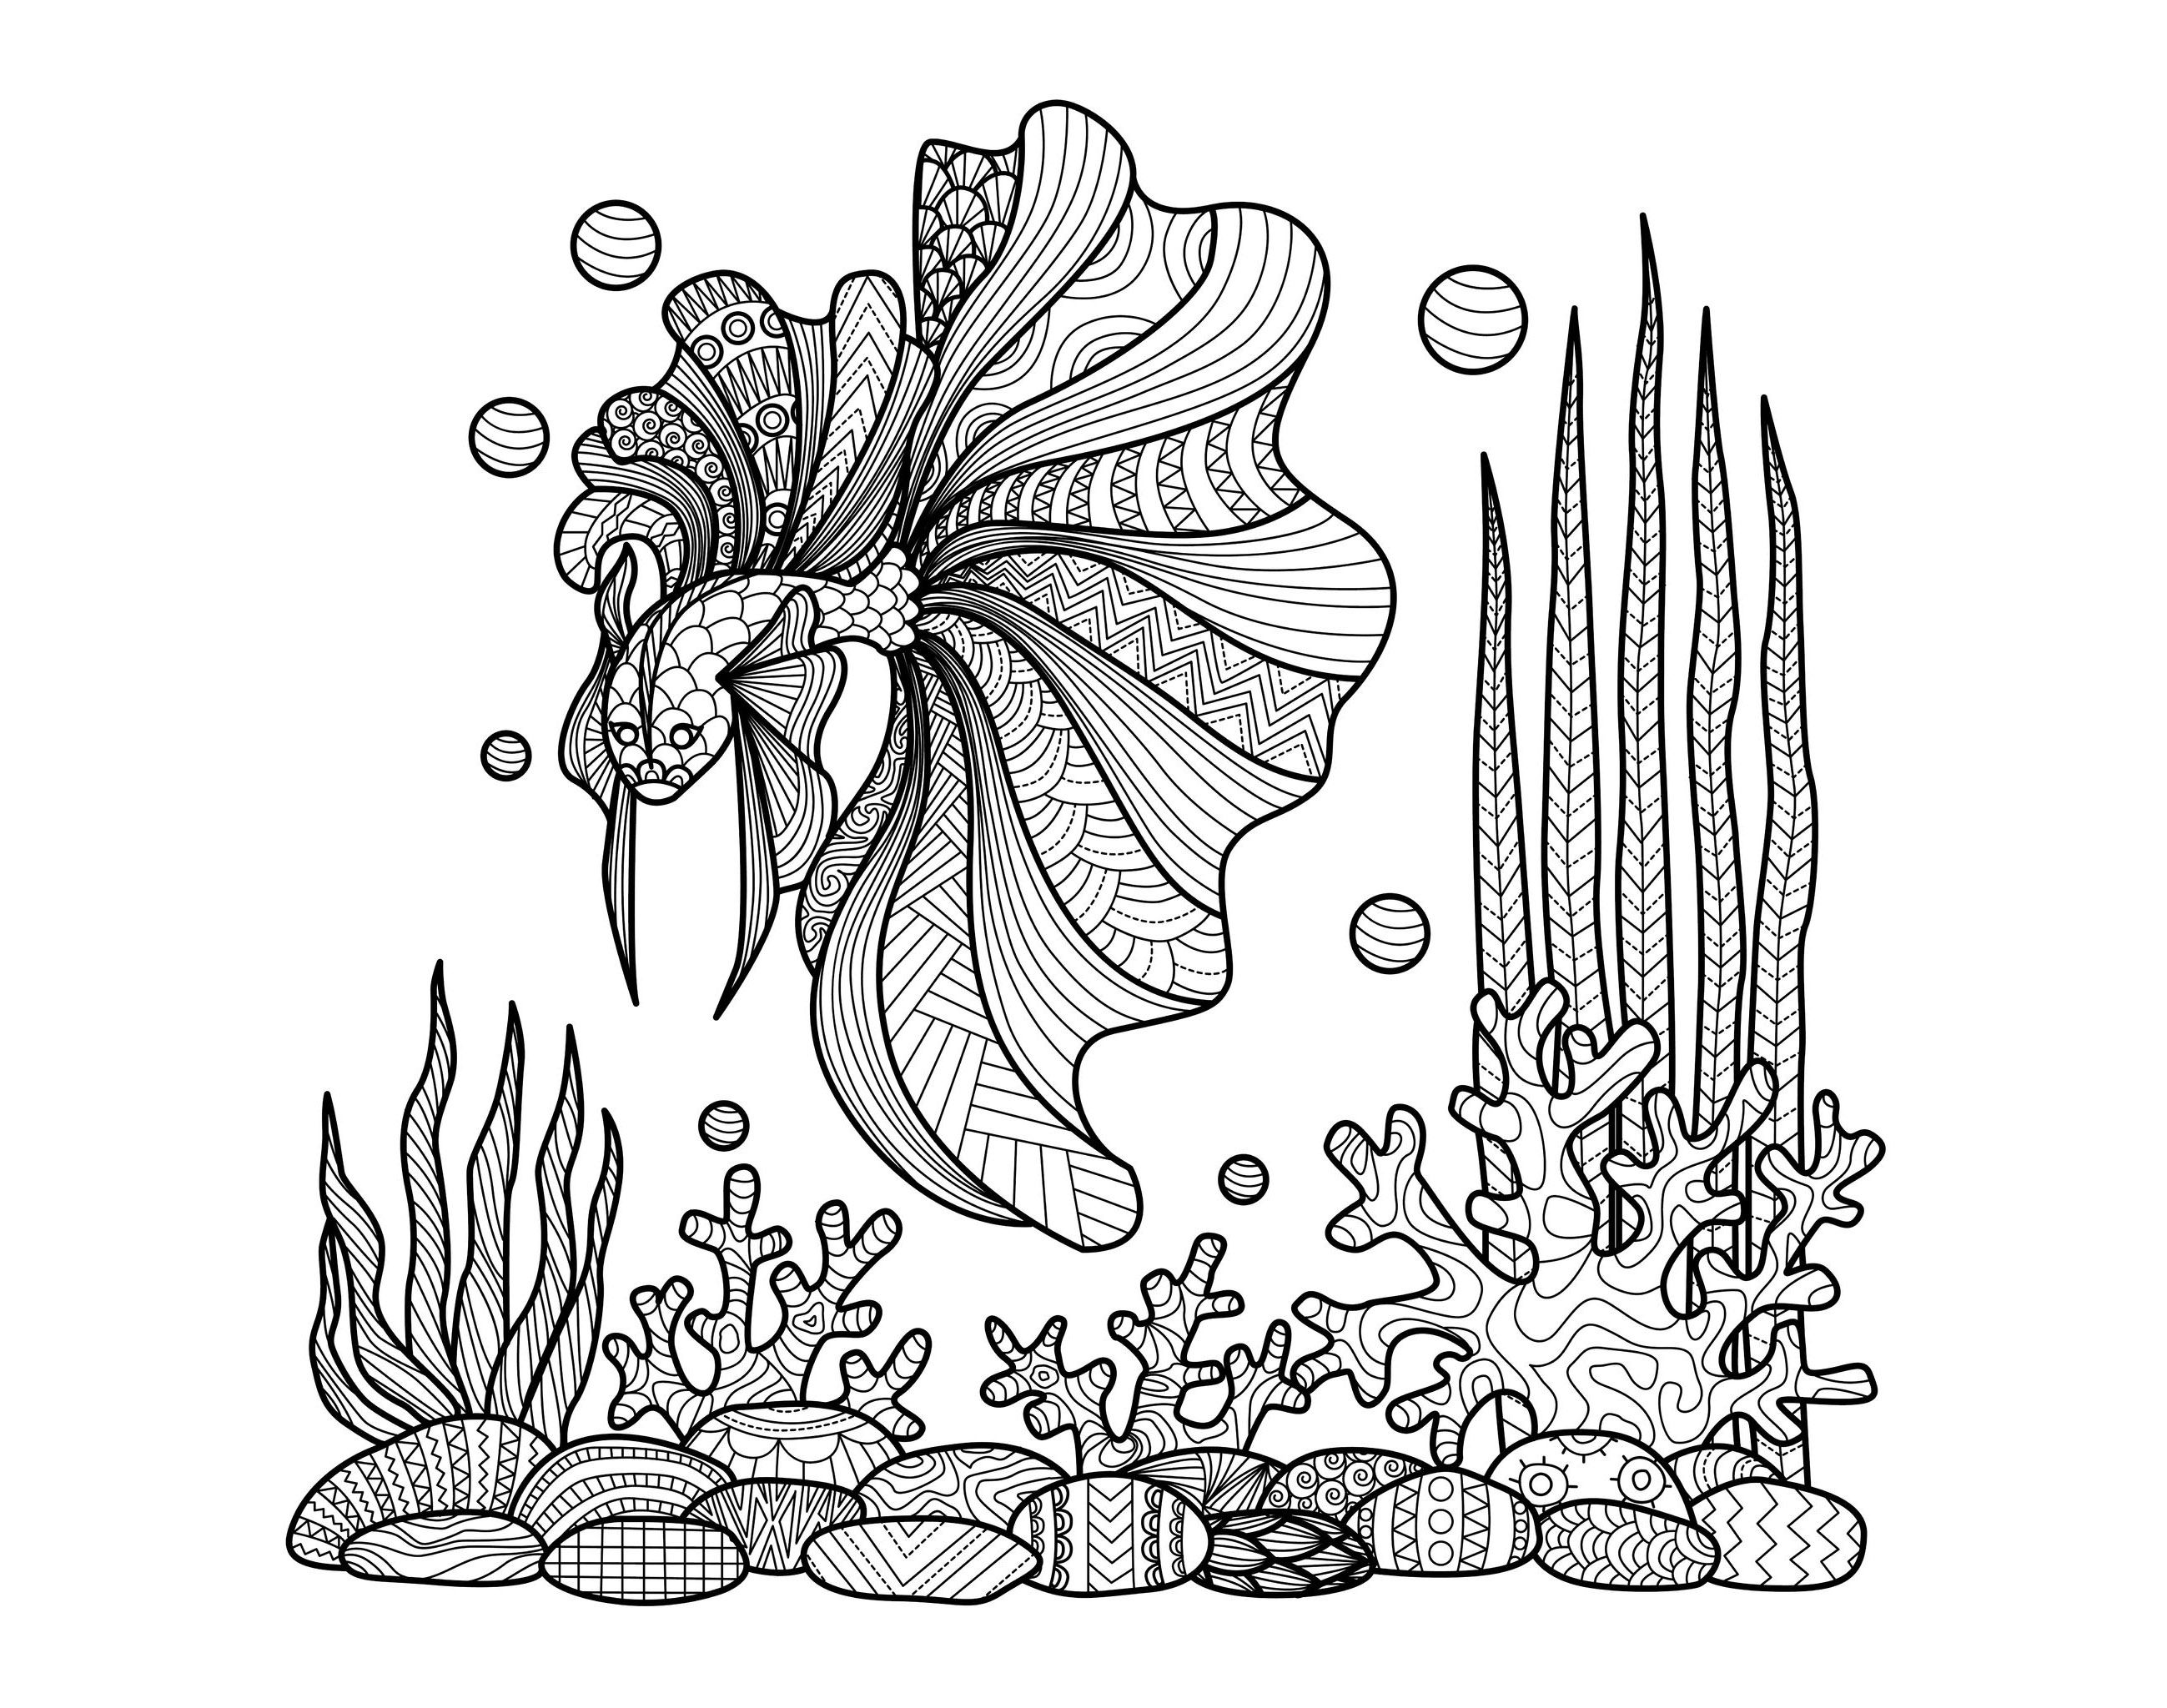 free coloring page coloring adult zentangle fish on corals by - Fish Coloring Pages For Adults